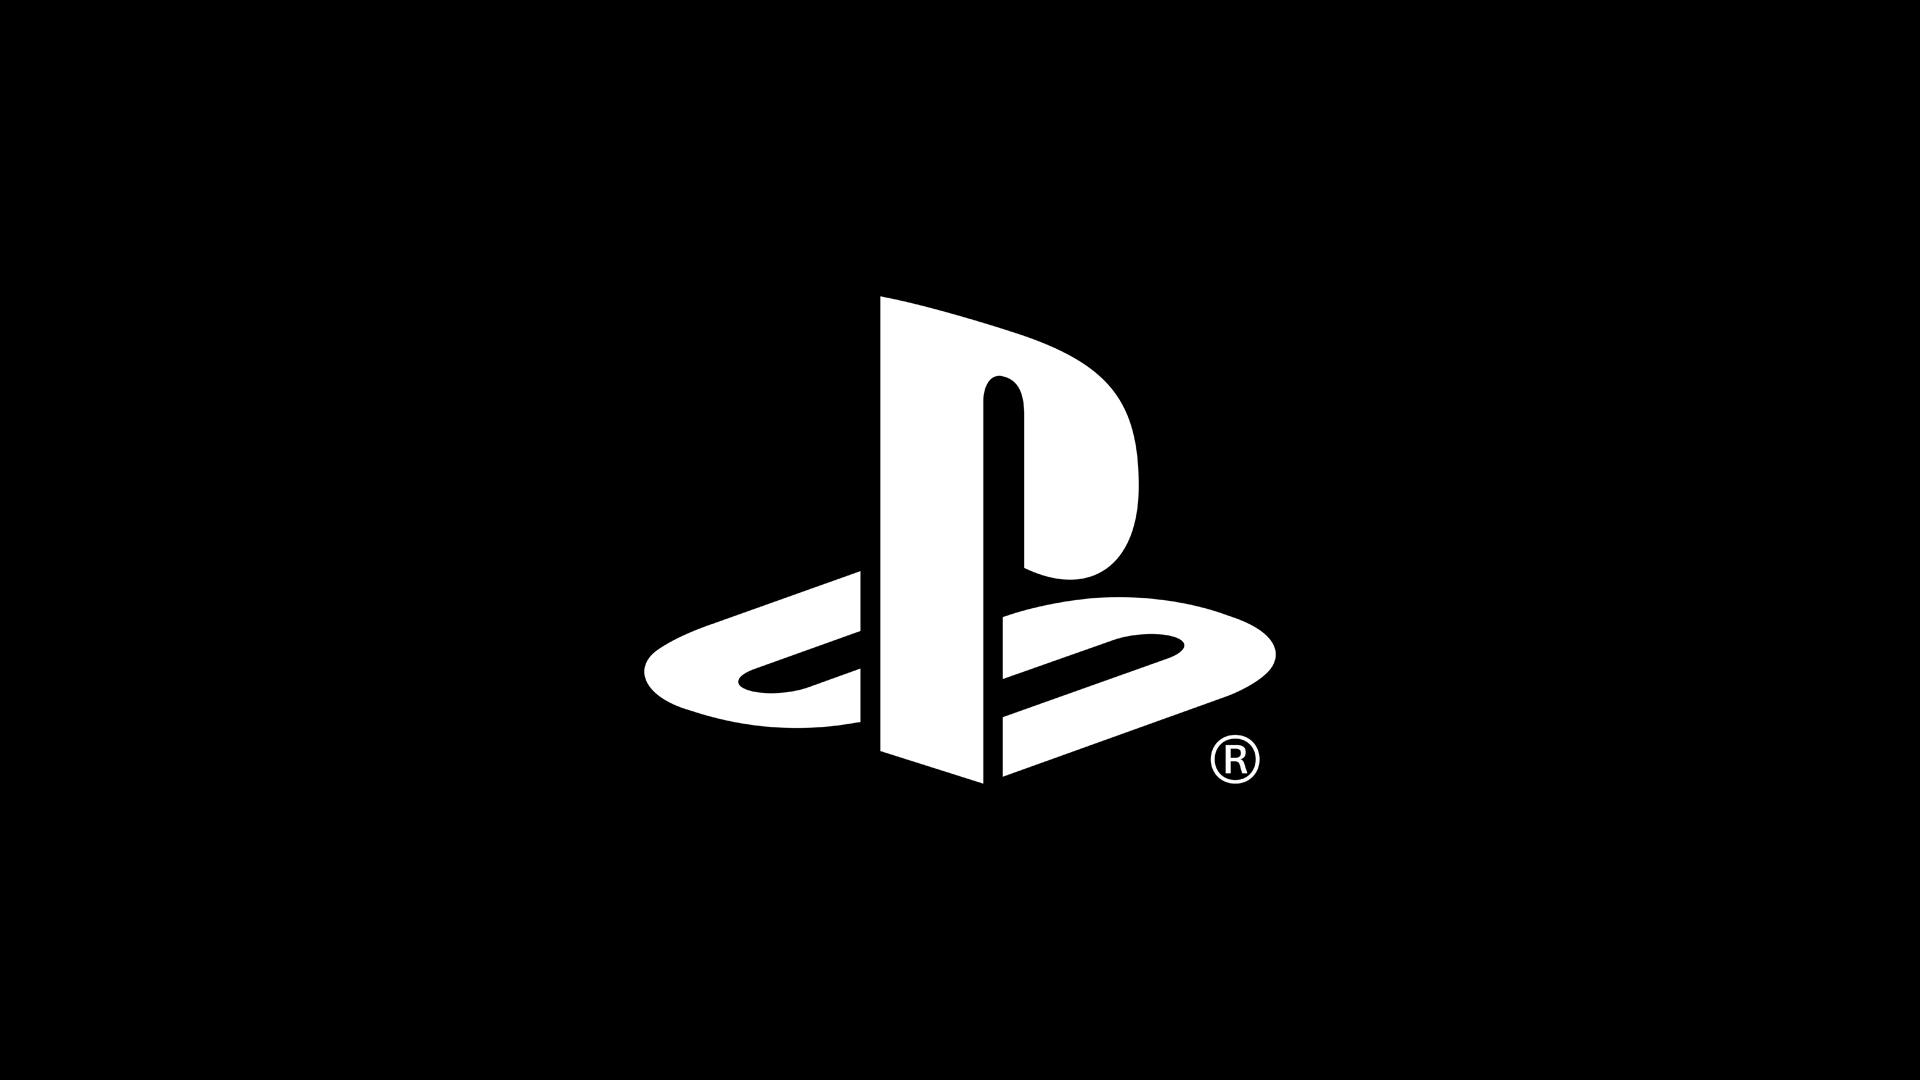 Playstations logotyp